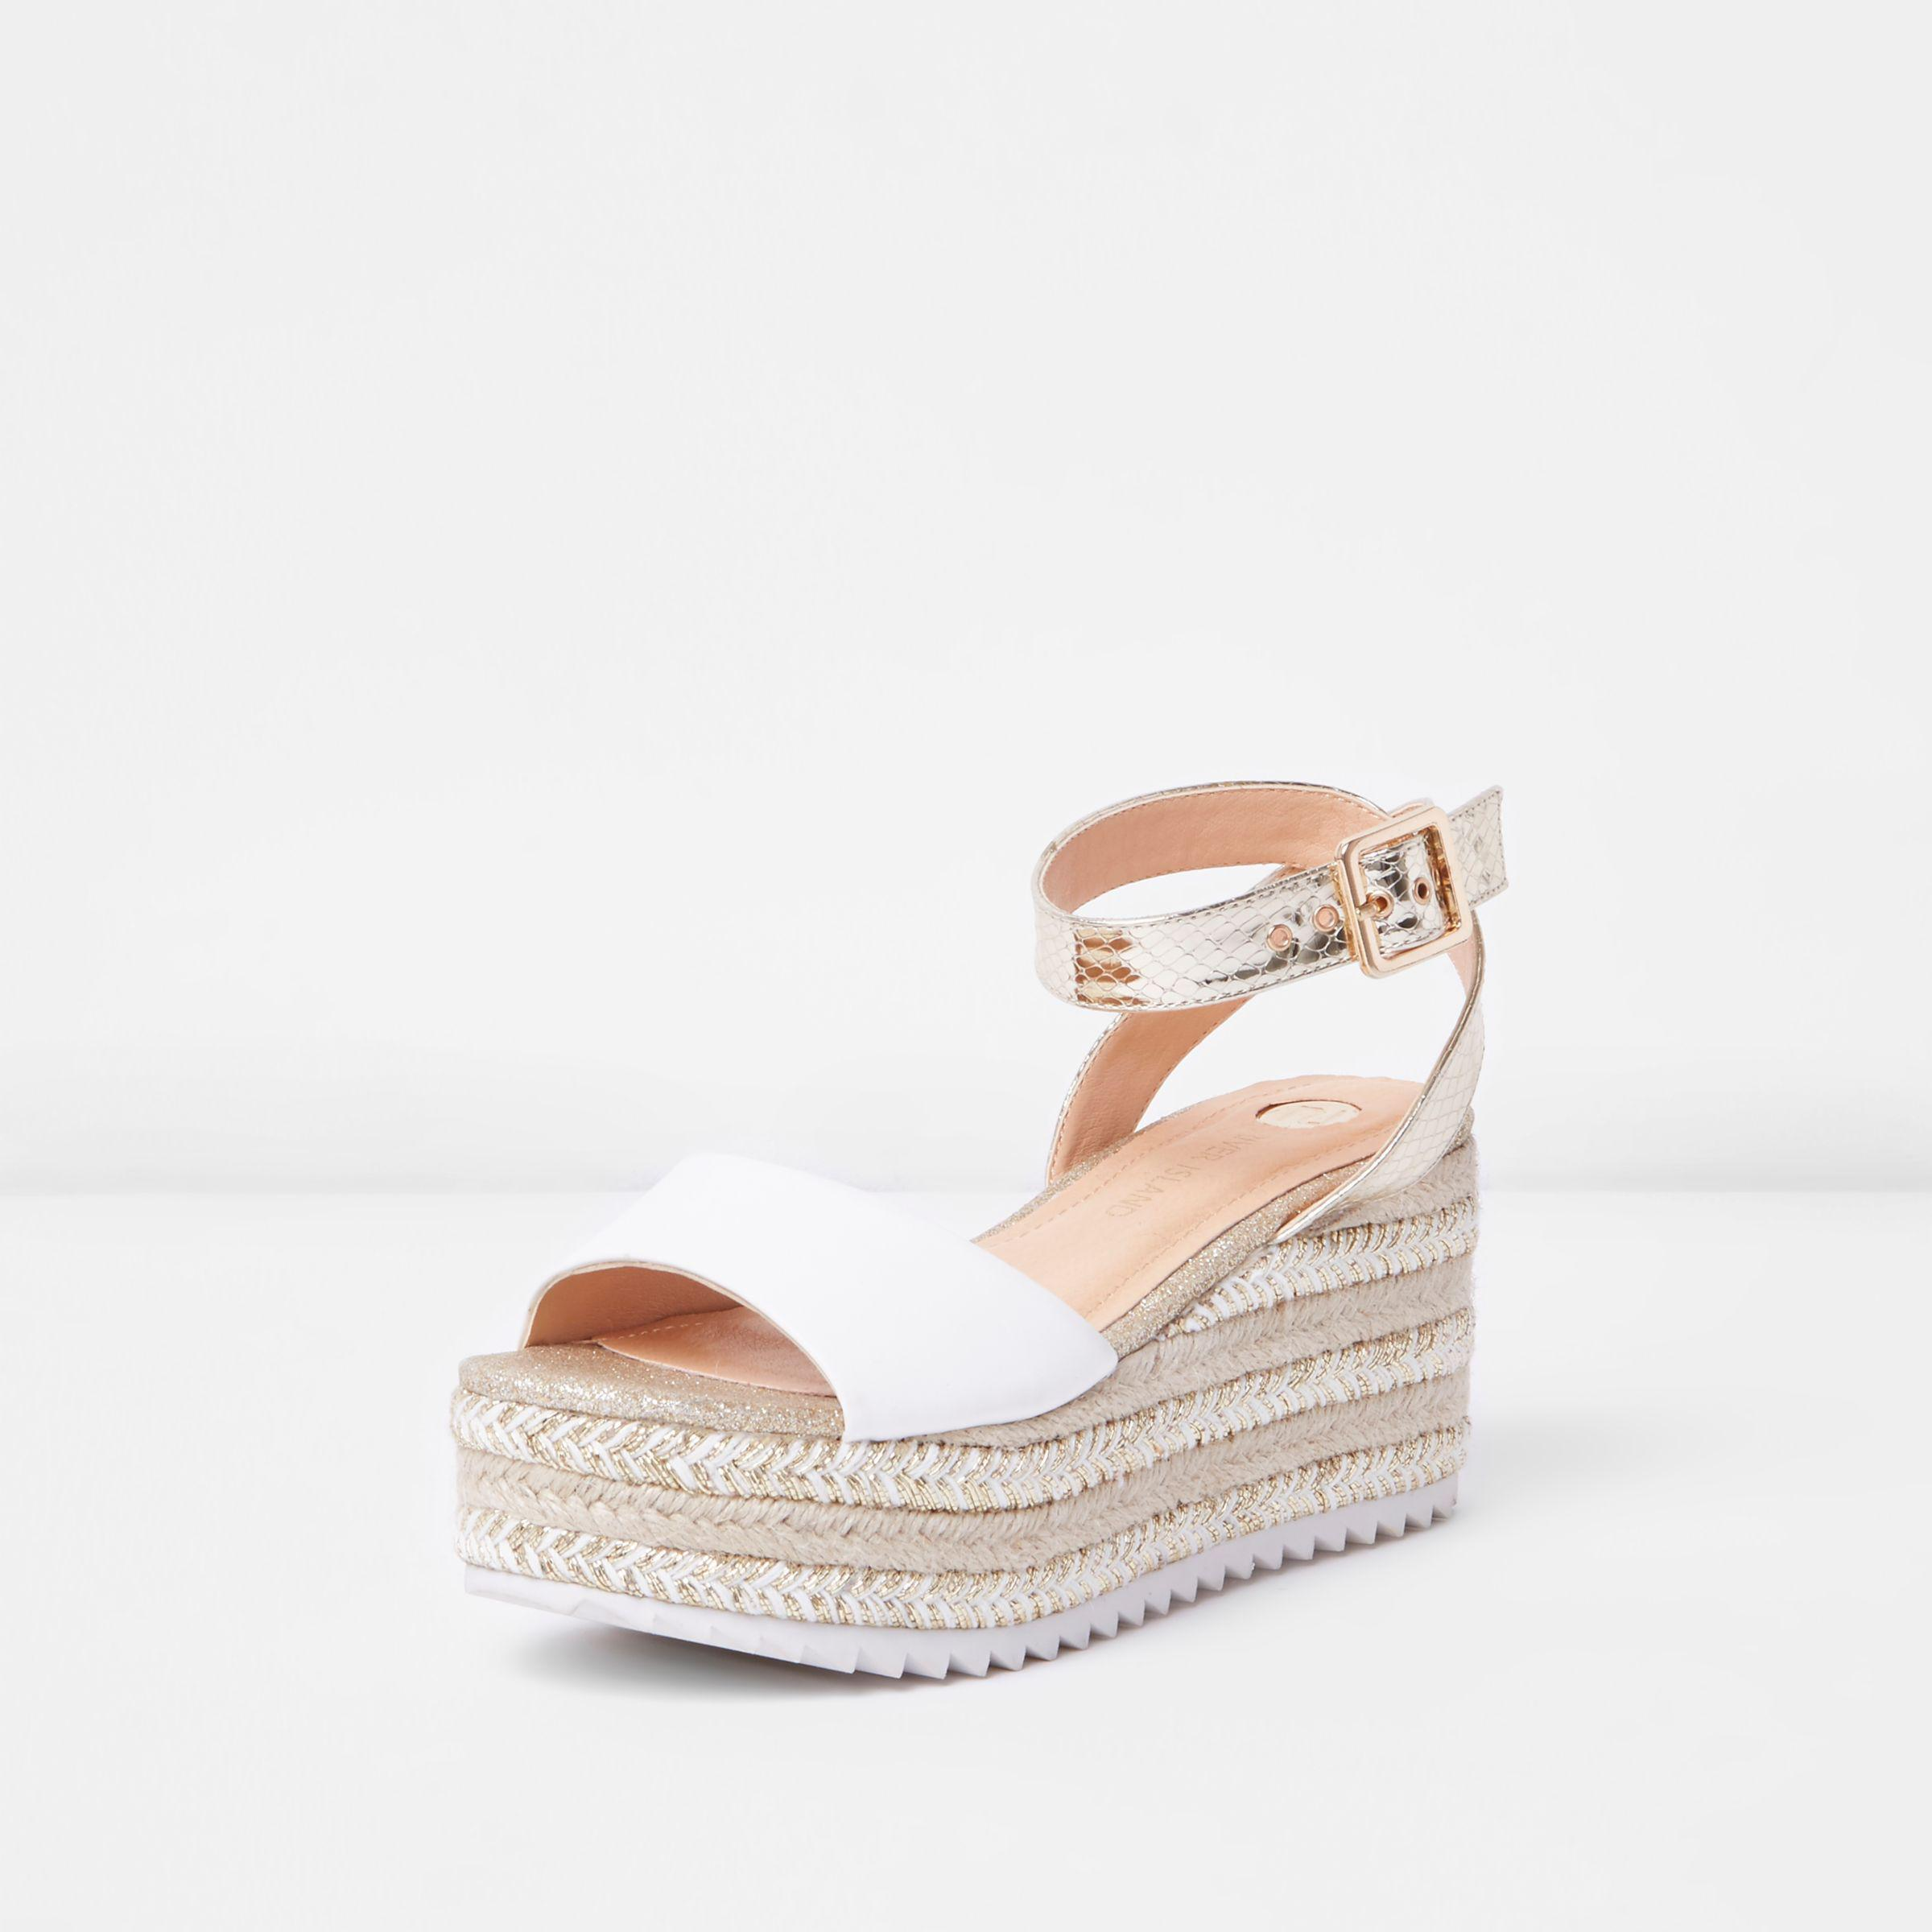 3e21e3cdf41 River Island Gold Two Part Espadrille Wedge Sandals in Metallic - Lyst